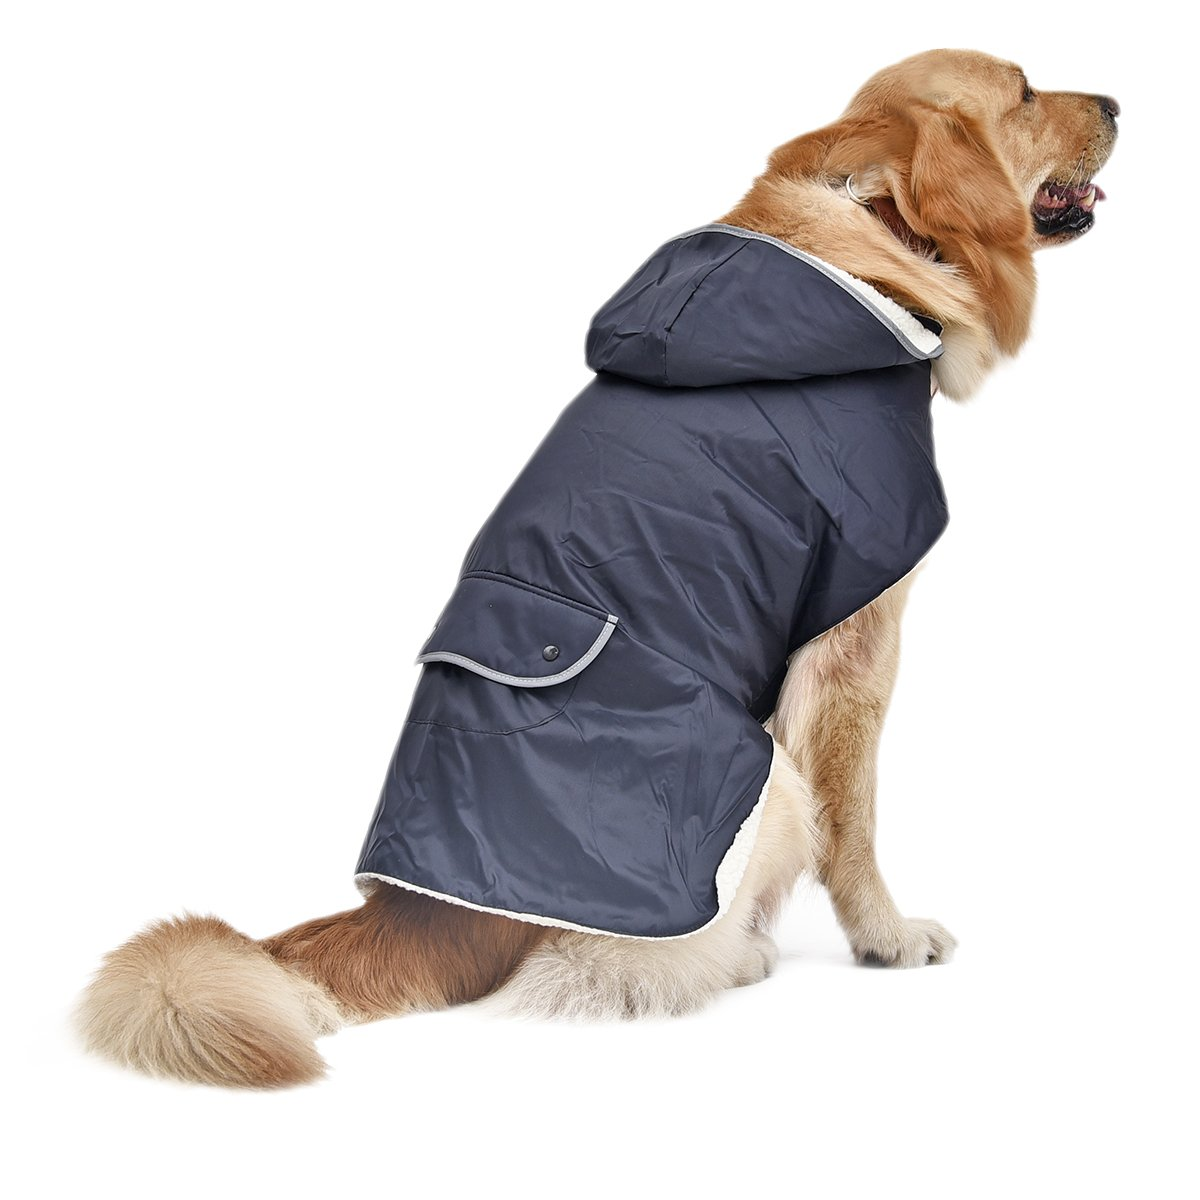 4 Pets Dog Clothes Pet Coat Large Dog Apparel Removable Hoodies Back Pocket & Reflective Design XXL